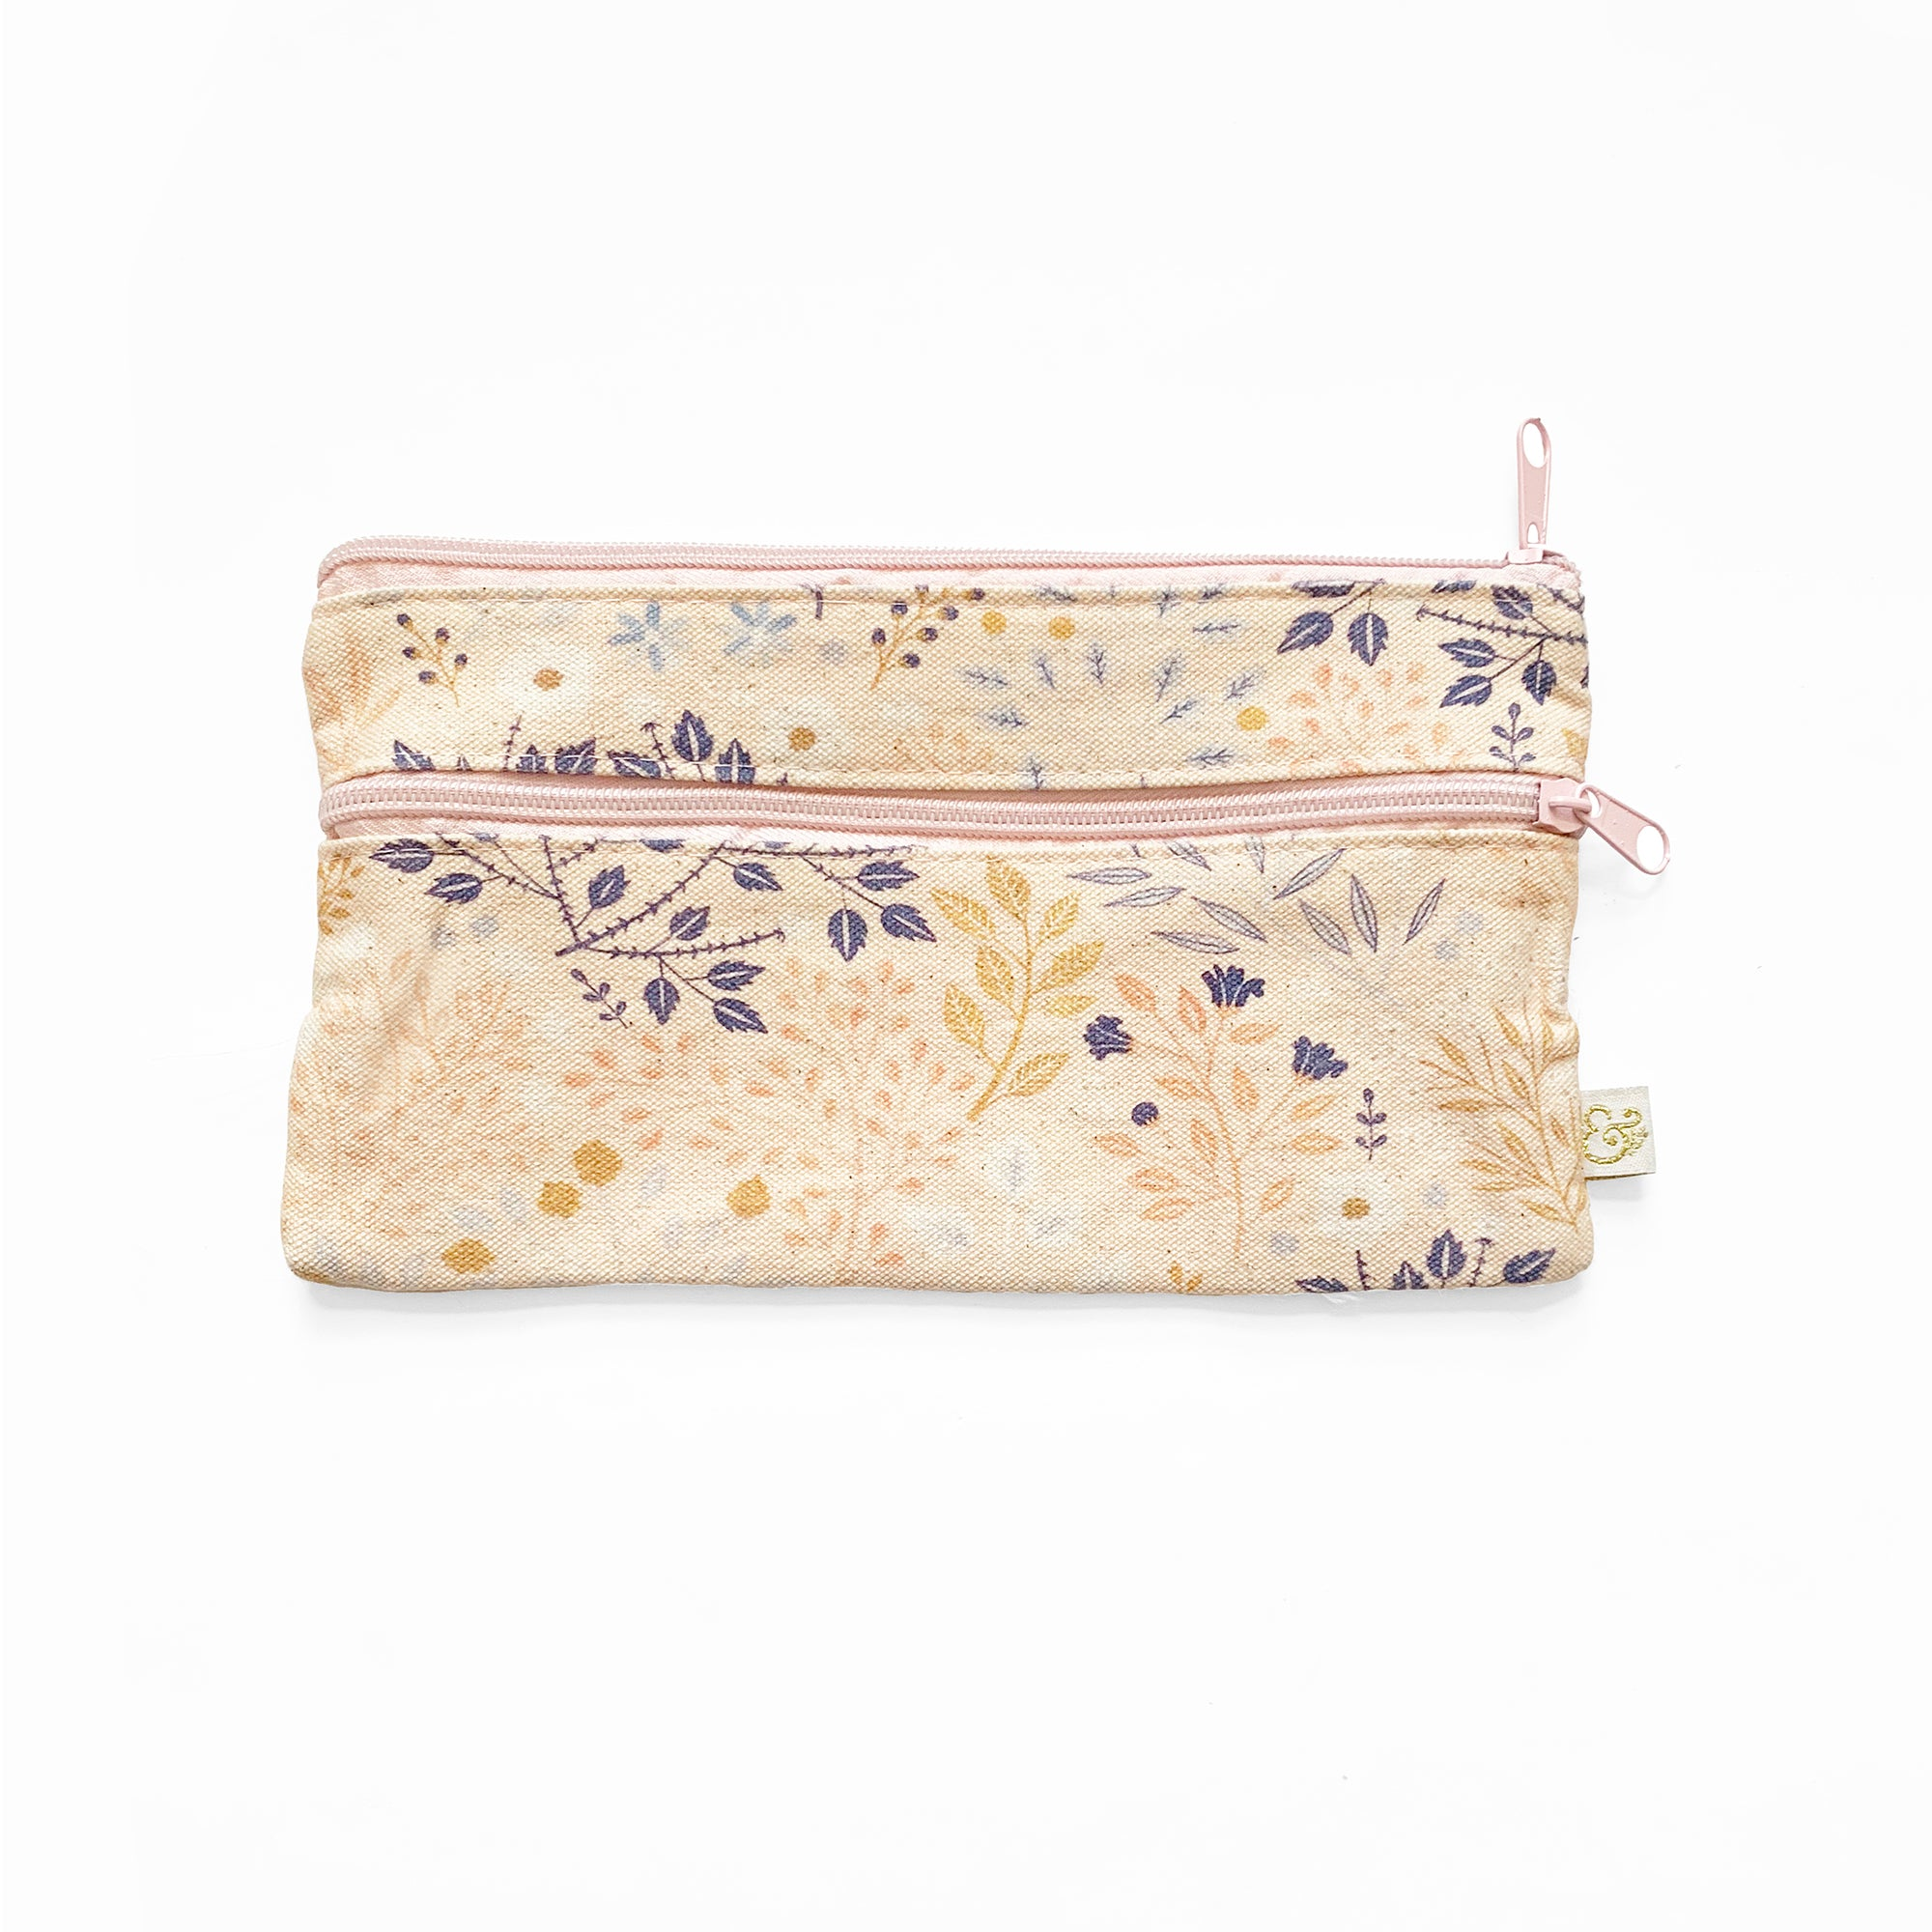 Blush-A-Bye Pencil Pouch Attaches to Journal